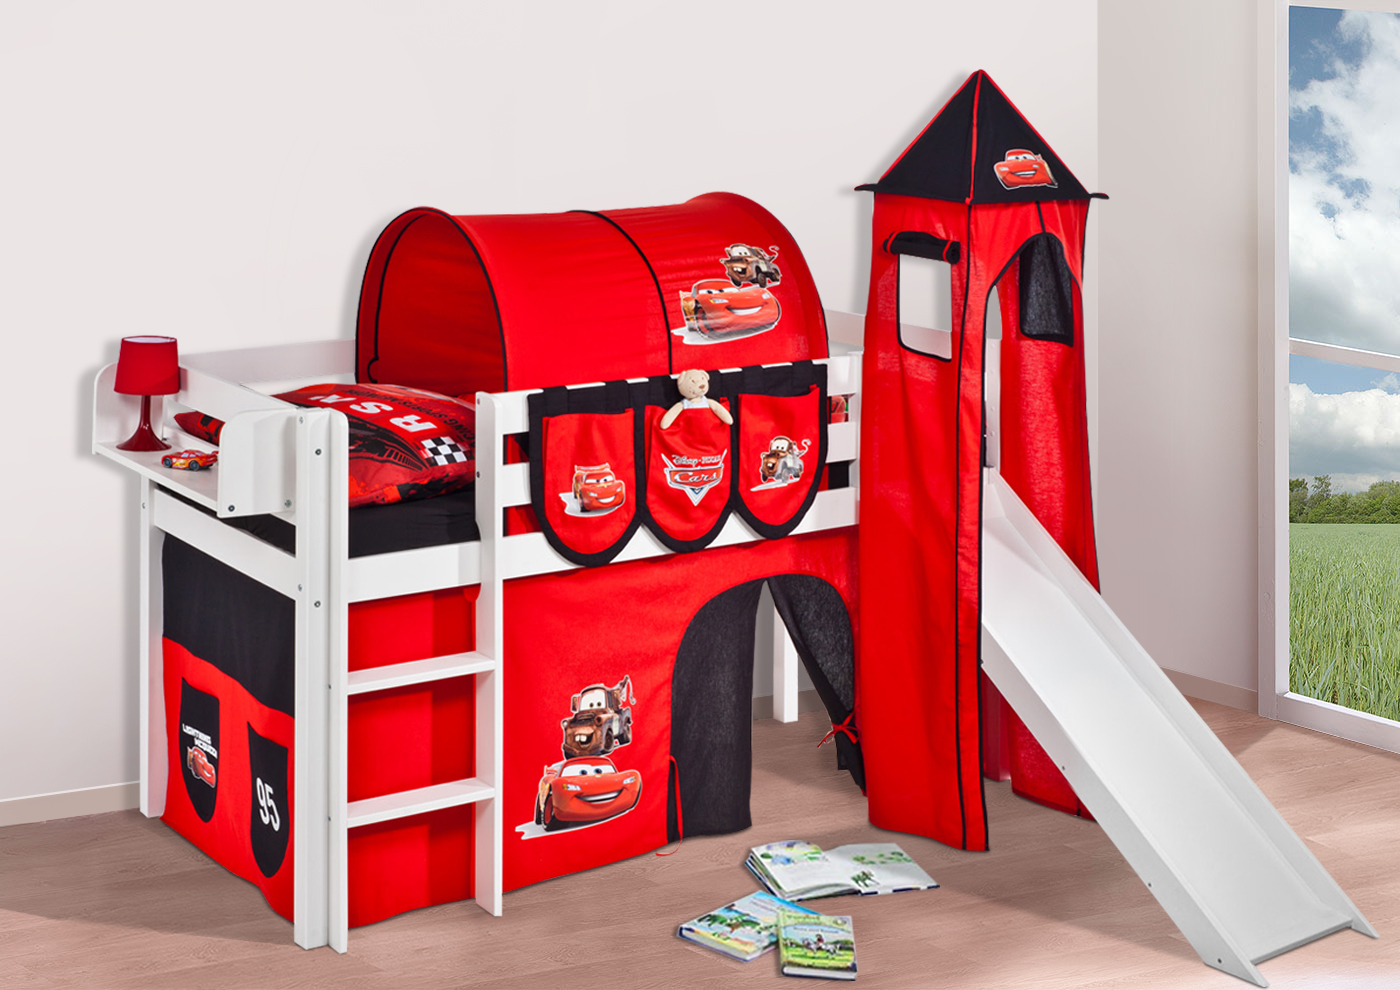 spielbett hochbett kinderbett jelle mit turm rutsche. Black Bedroom Furniture Sets. Home Design Ideas